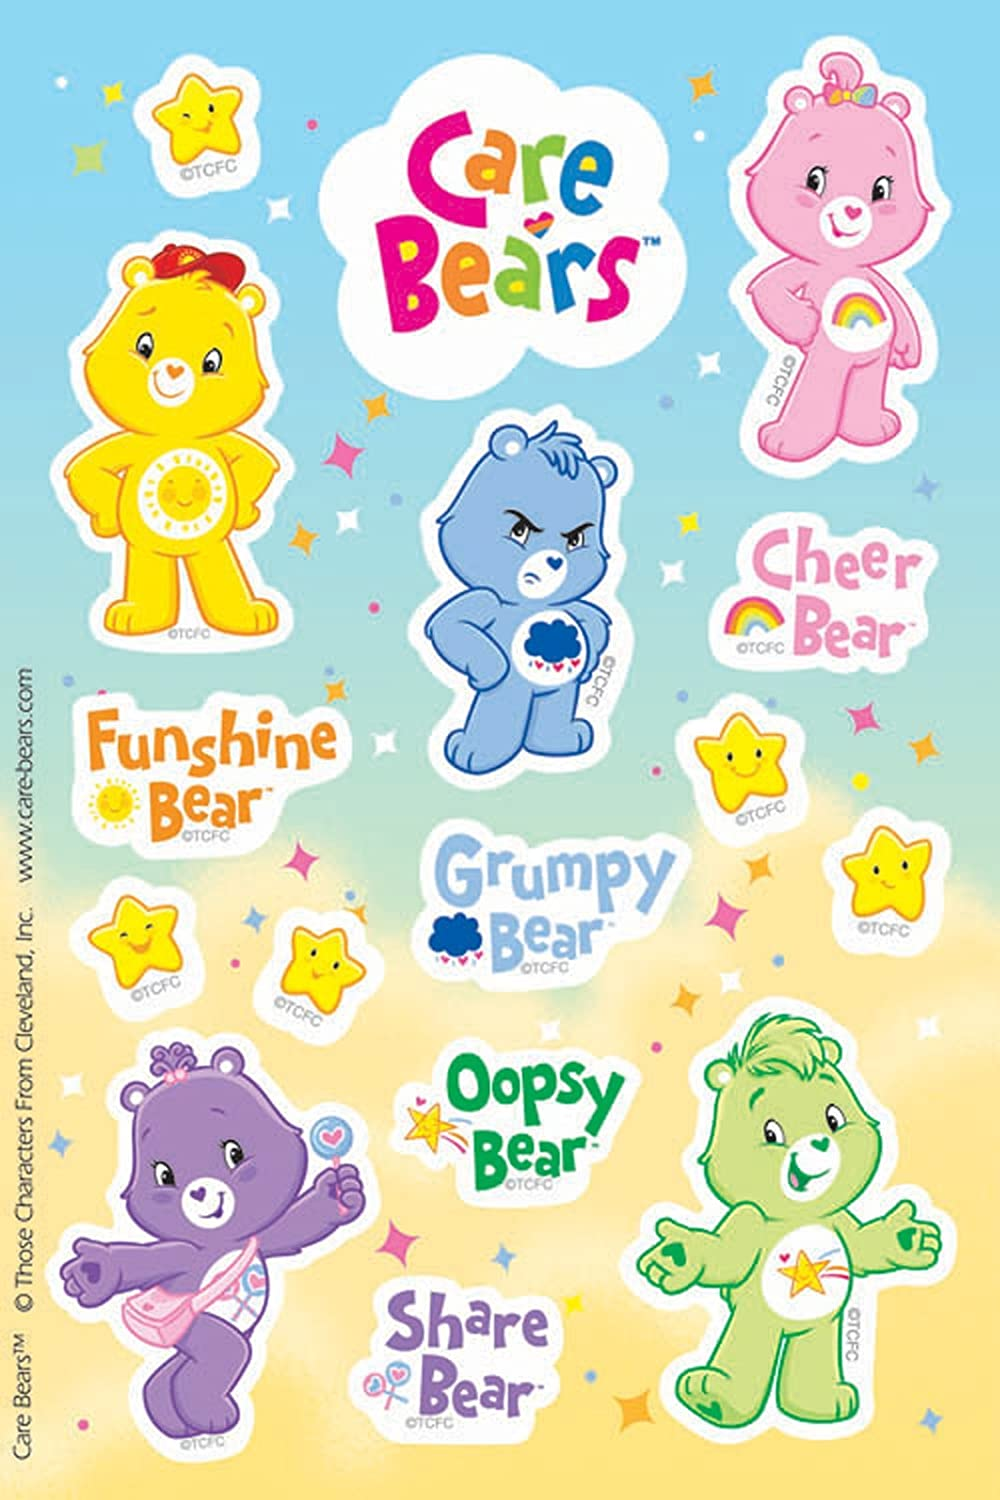 Names care pictures with bear